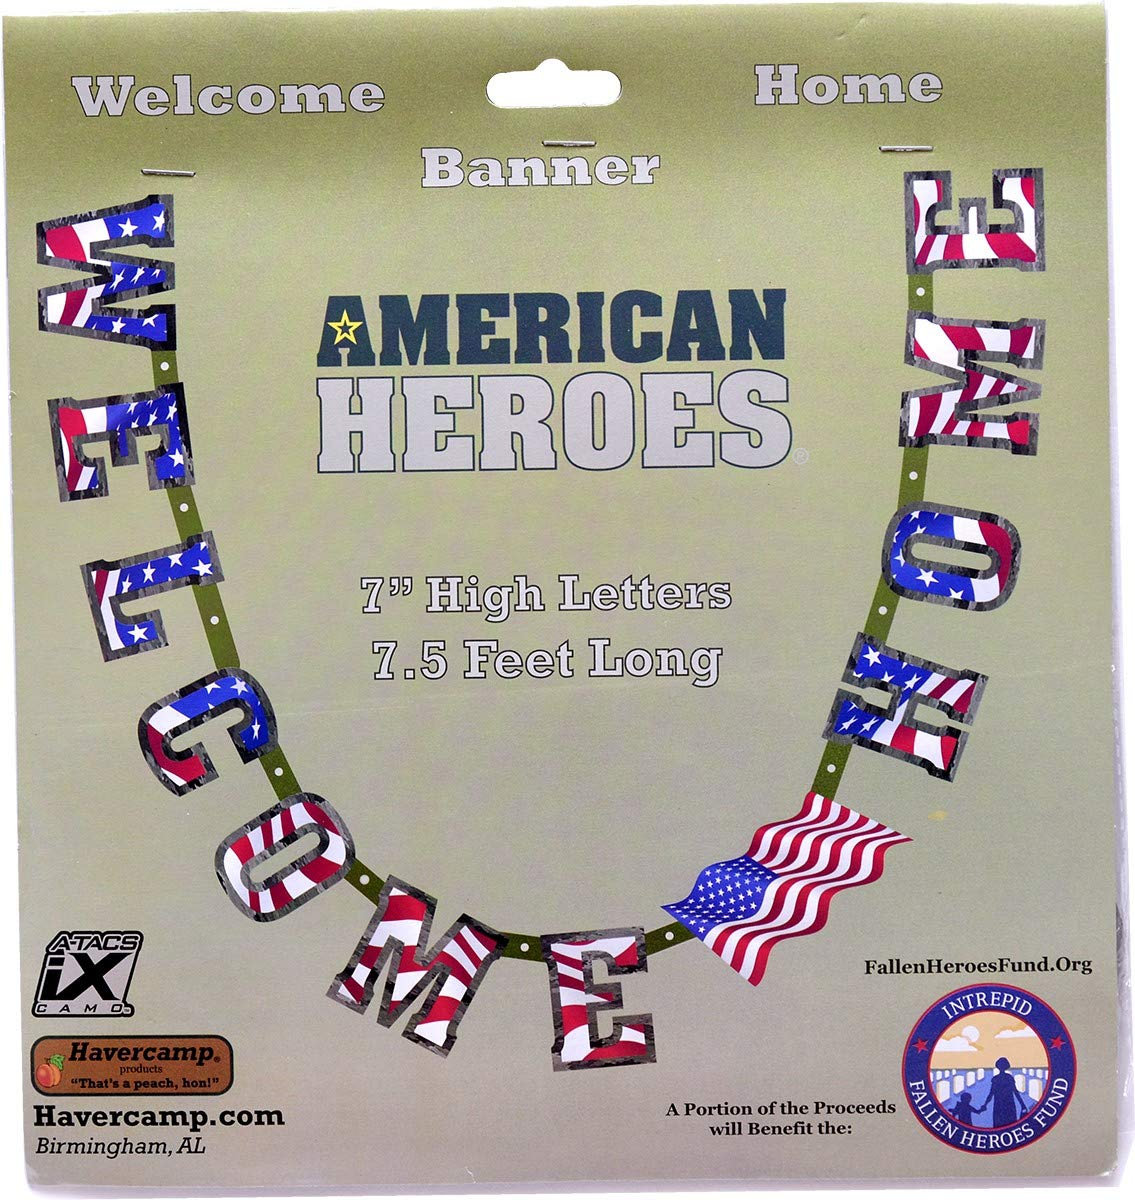 "Havercamp US Army Military Welcome Home Banner with American Flag – Welcome Home Banner Military with Large 7"" Cardboard Letters, 7.5 Feet Long – Welcome Home Parties & Military Party Supplies"